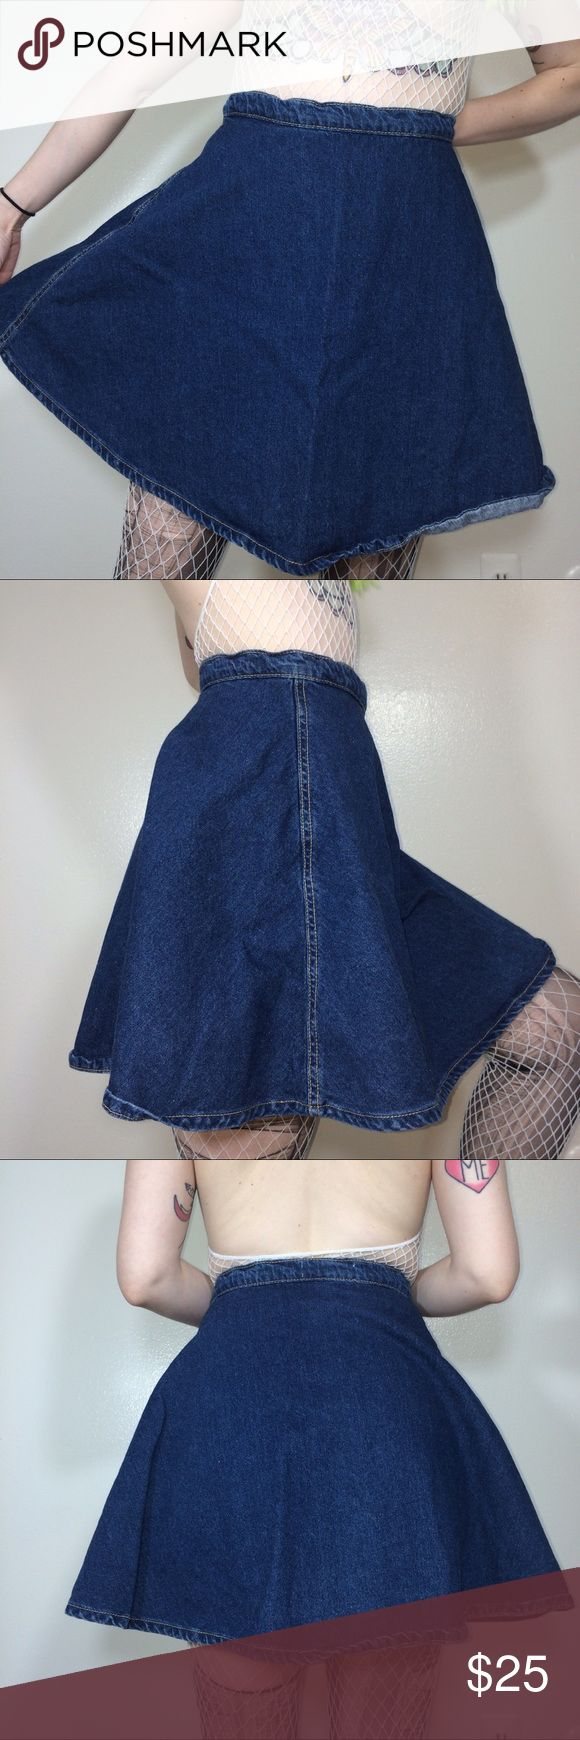 "American Apparel Jeans Denim Skirt American Apparel Jeans Denim Skirt. Tagged XL. Made in USA 🇺🇸 Minor signs of wear & fading. Obviously needs a proper iron/steam! :)  Waist - 30"" Length - 18.5""  *I'm not responsible for the fit of an item*  🚫 I don't discuss prices through comments, please use the offer button!  ⚡️ I ship everyday Monday - Friday 📬 All packages handled with care 📦 Bundle 2+ items for a discount 🚫 I don't trade  💖 Please, read shop policies! :) American Apparel Skirts…"